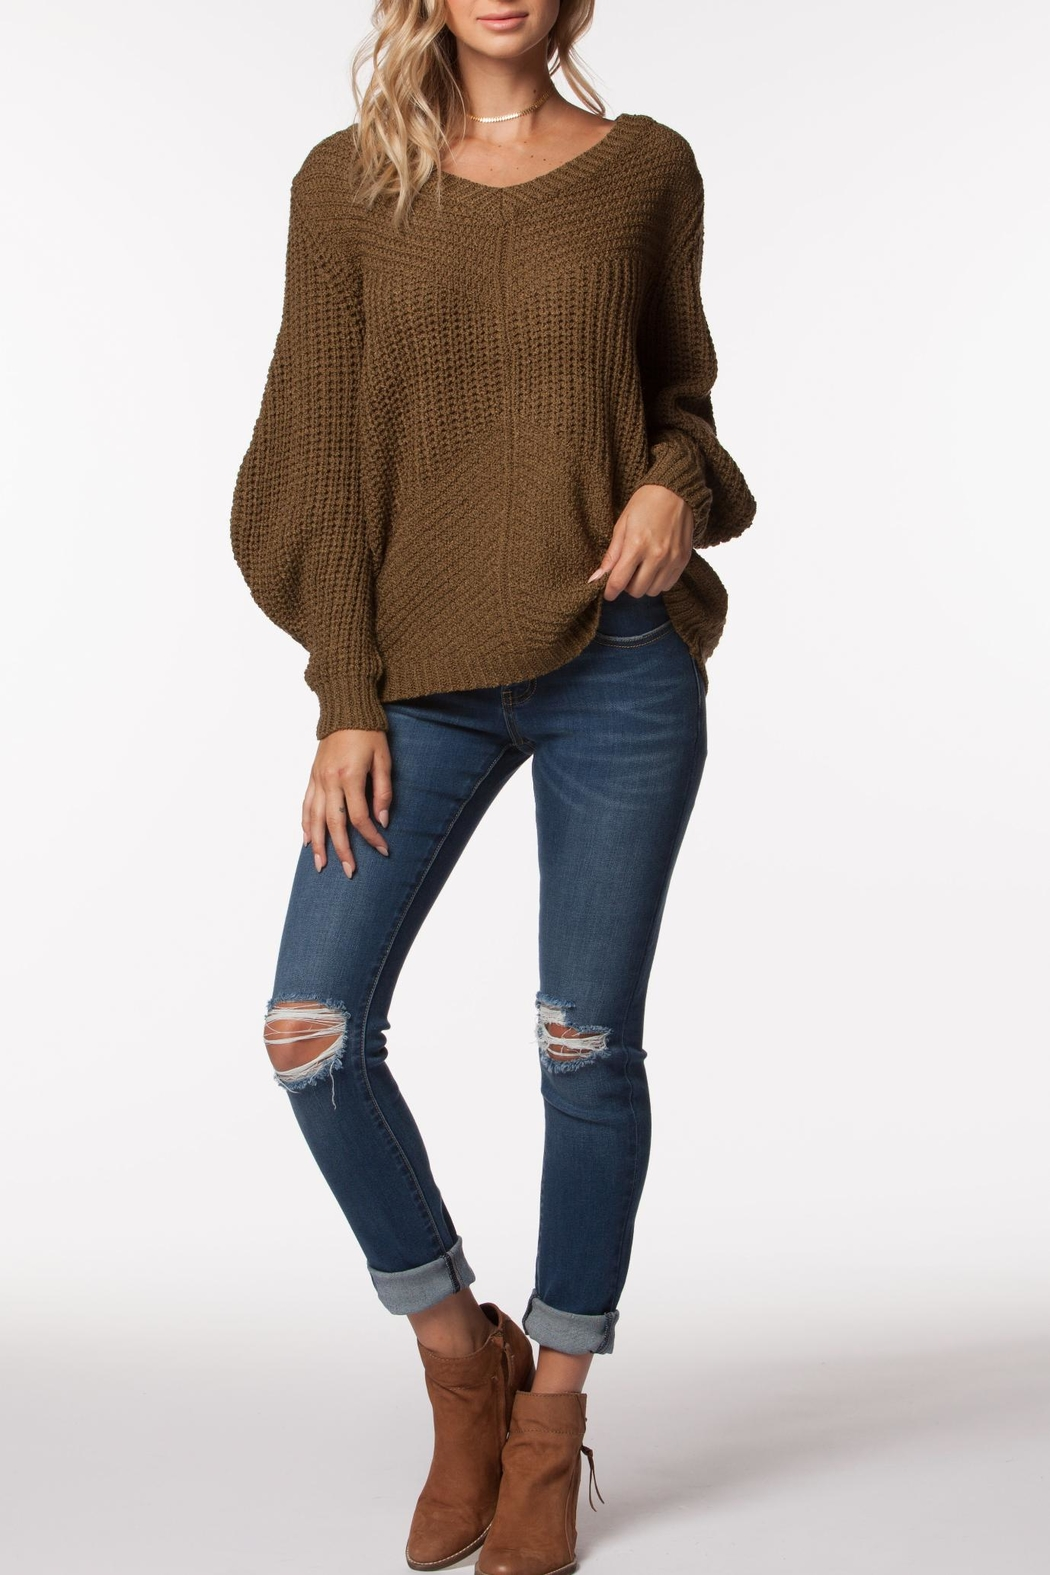 PPLA Clothing Tavern Sweater - Front Cropped Image